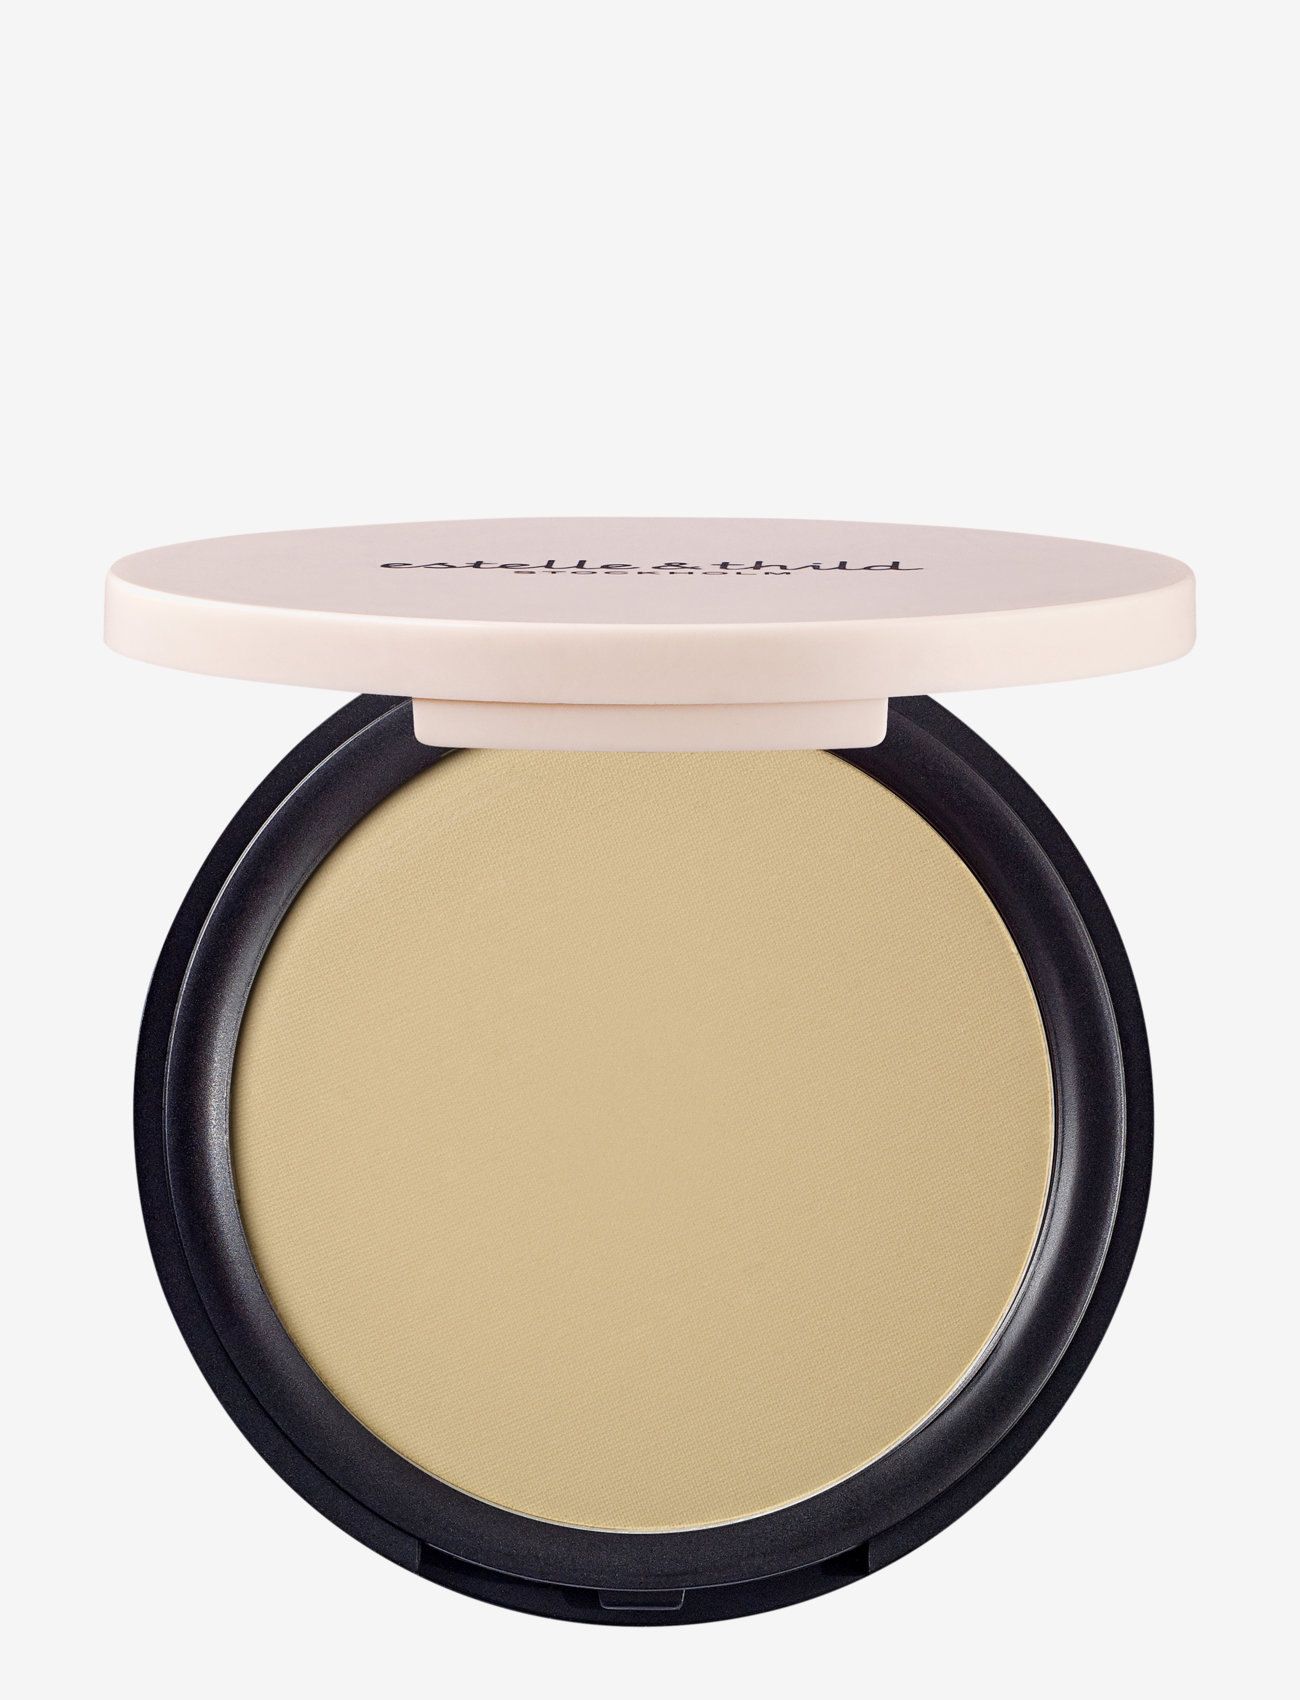 Estelle & Thild - BioMineral Silky Finishing Powder 122 Light Yellow - pudder - 122 light yellow - 0